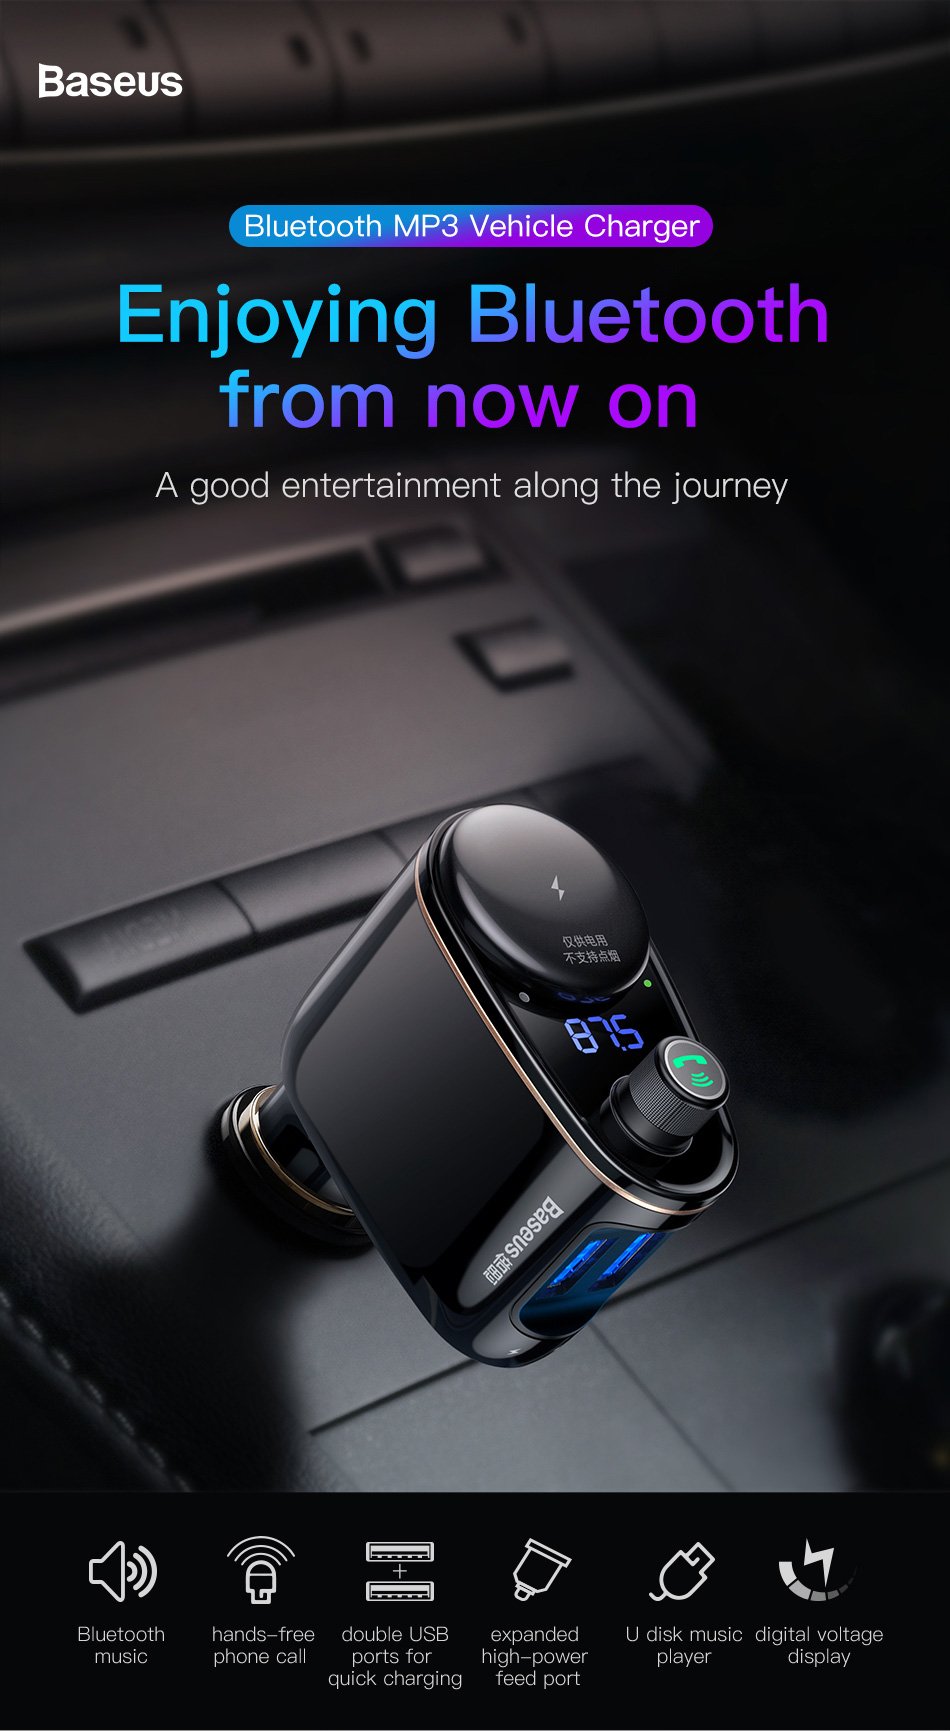 baseus car mp3 audio player